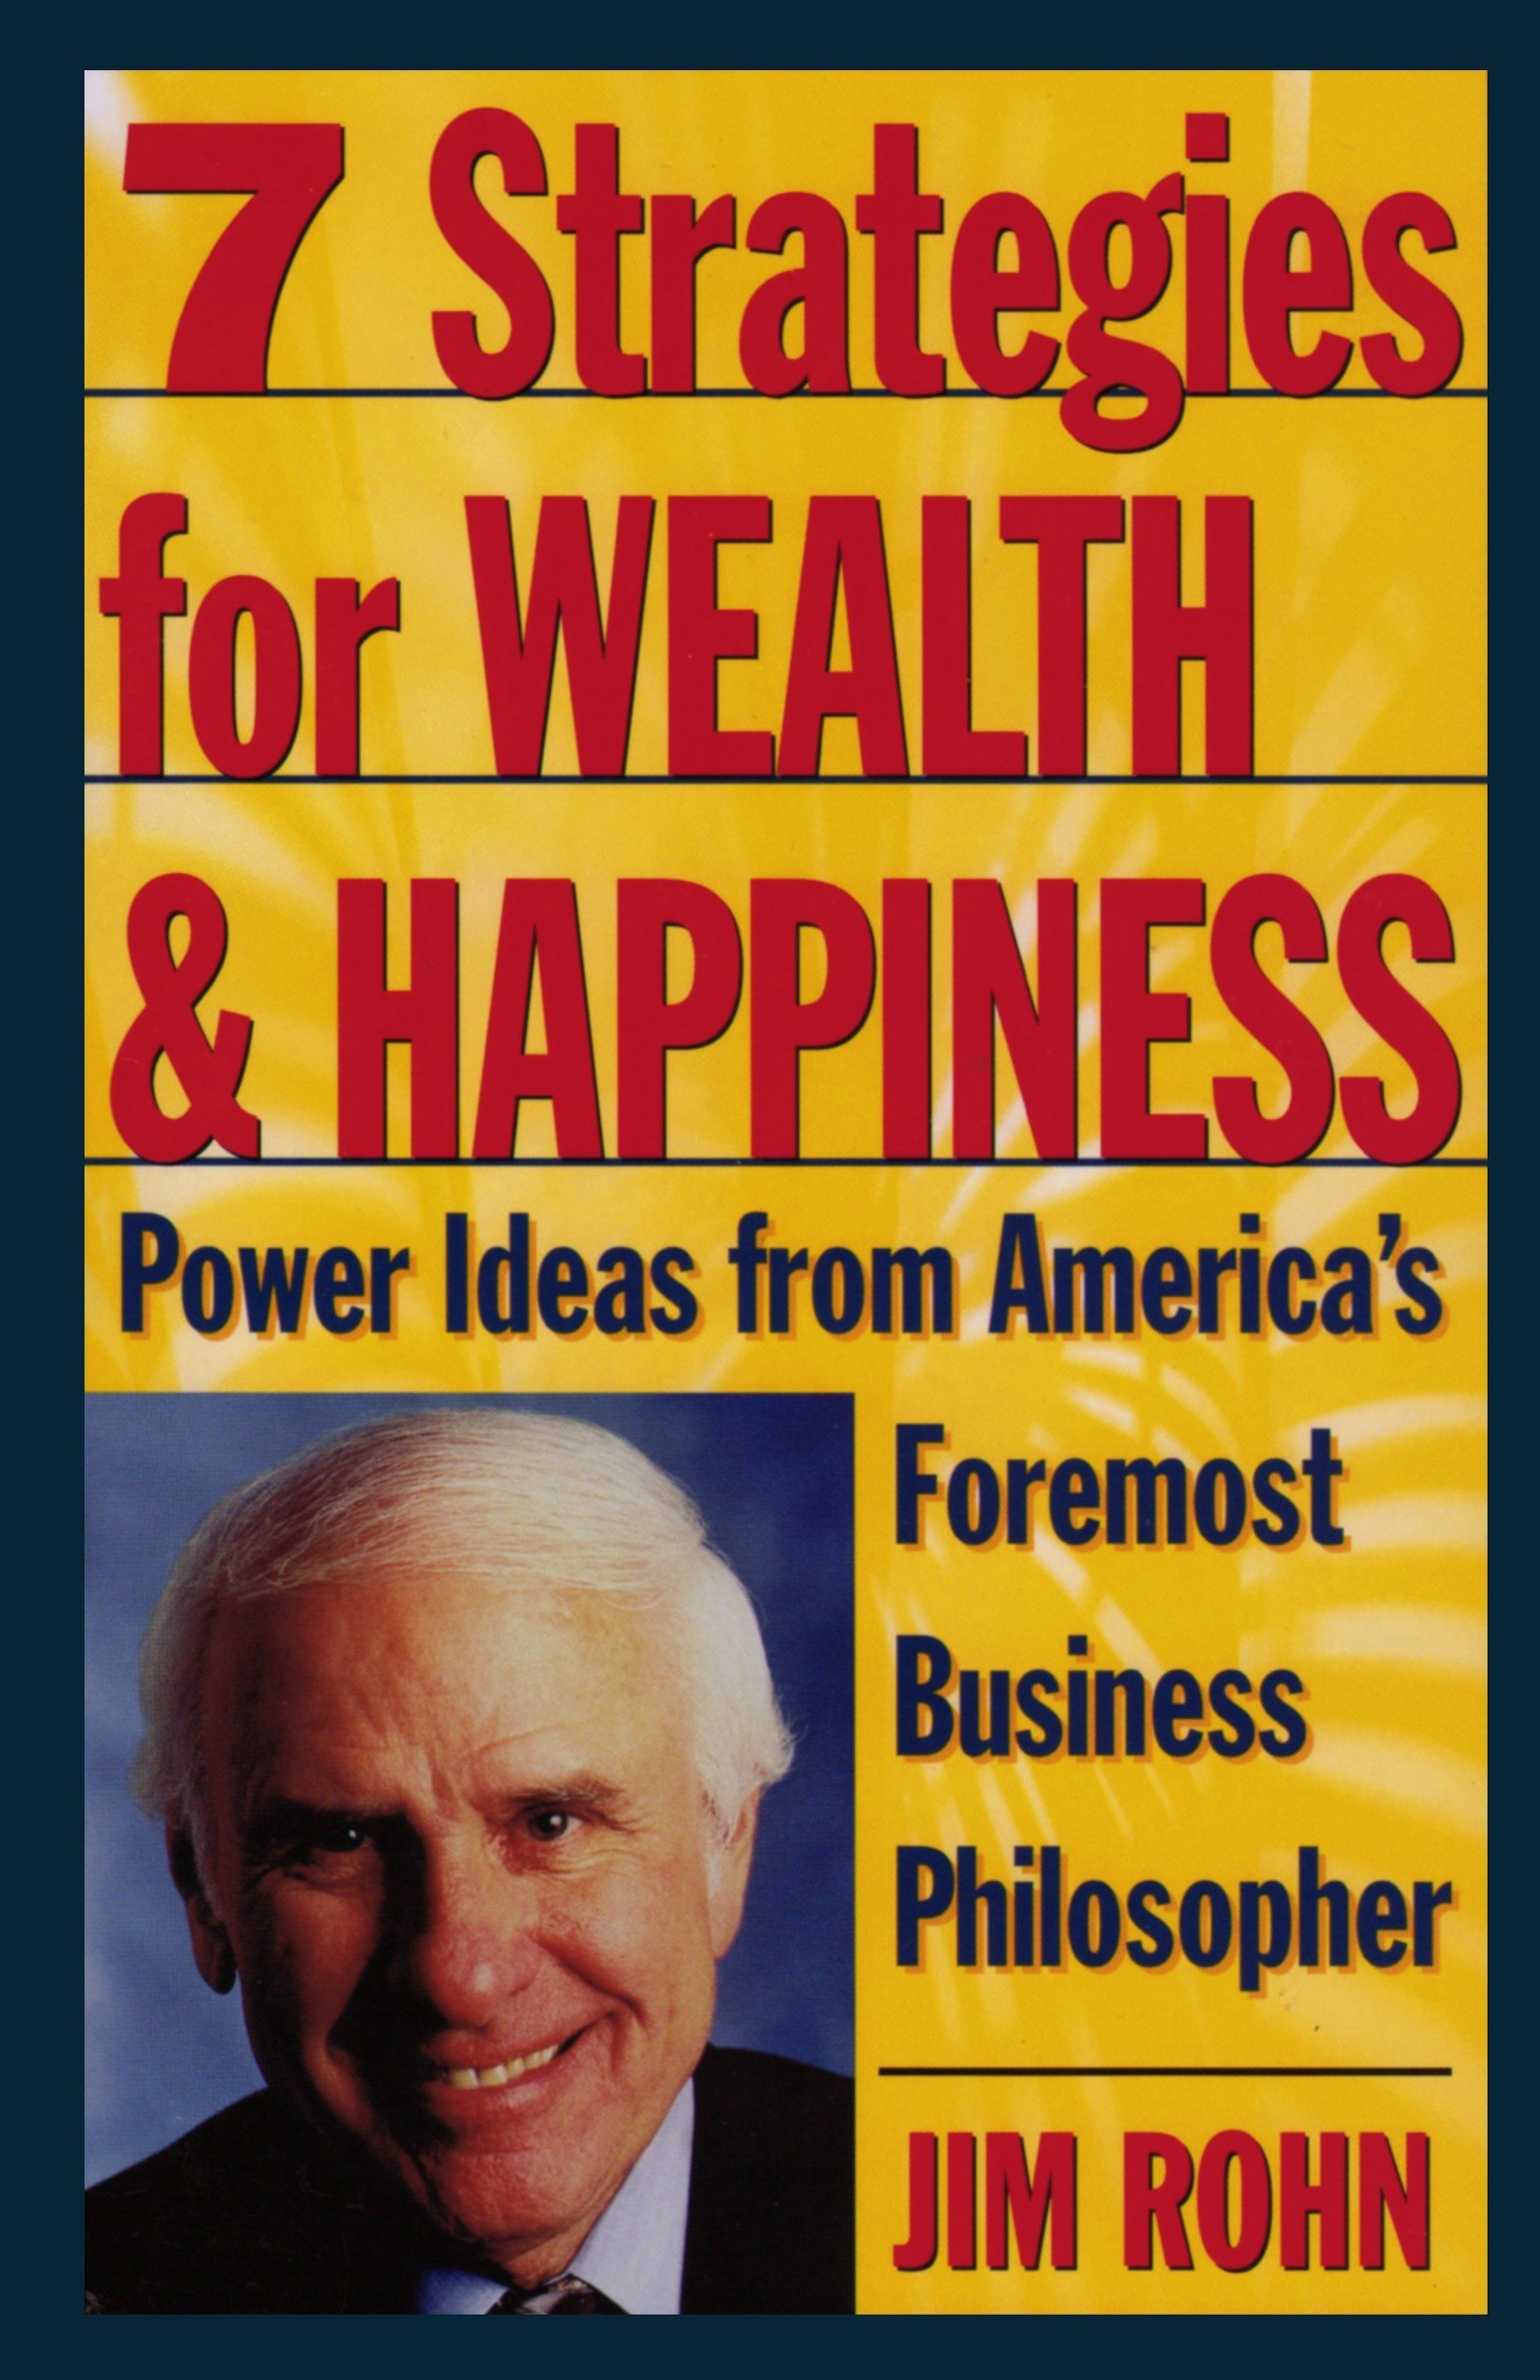 7 Strategies For Wealth And Happiness: Power Ideas from America's Foremost Business Philosopher: Amazon.co.uk: Rohn, Jim: 0086874506169: Books